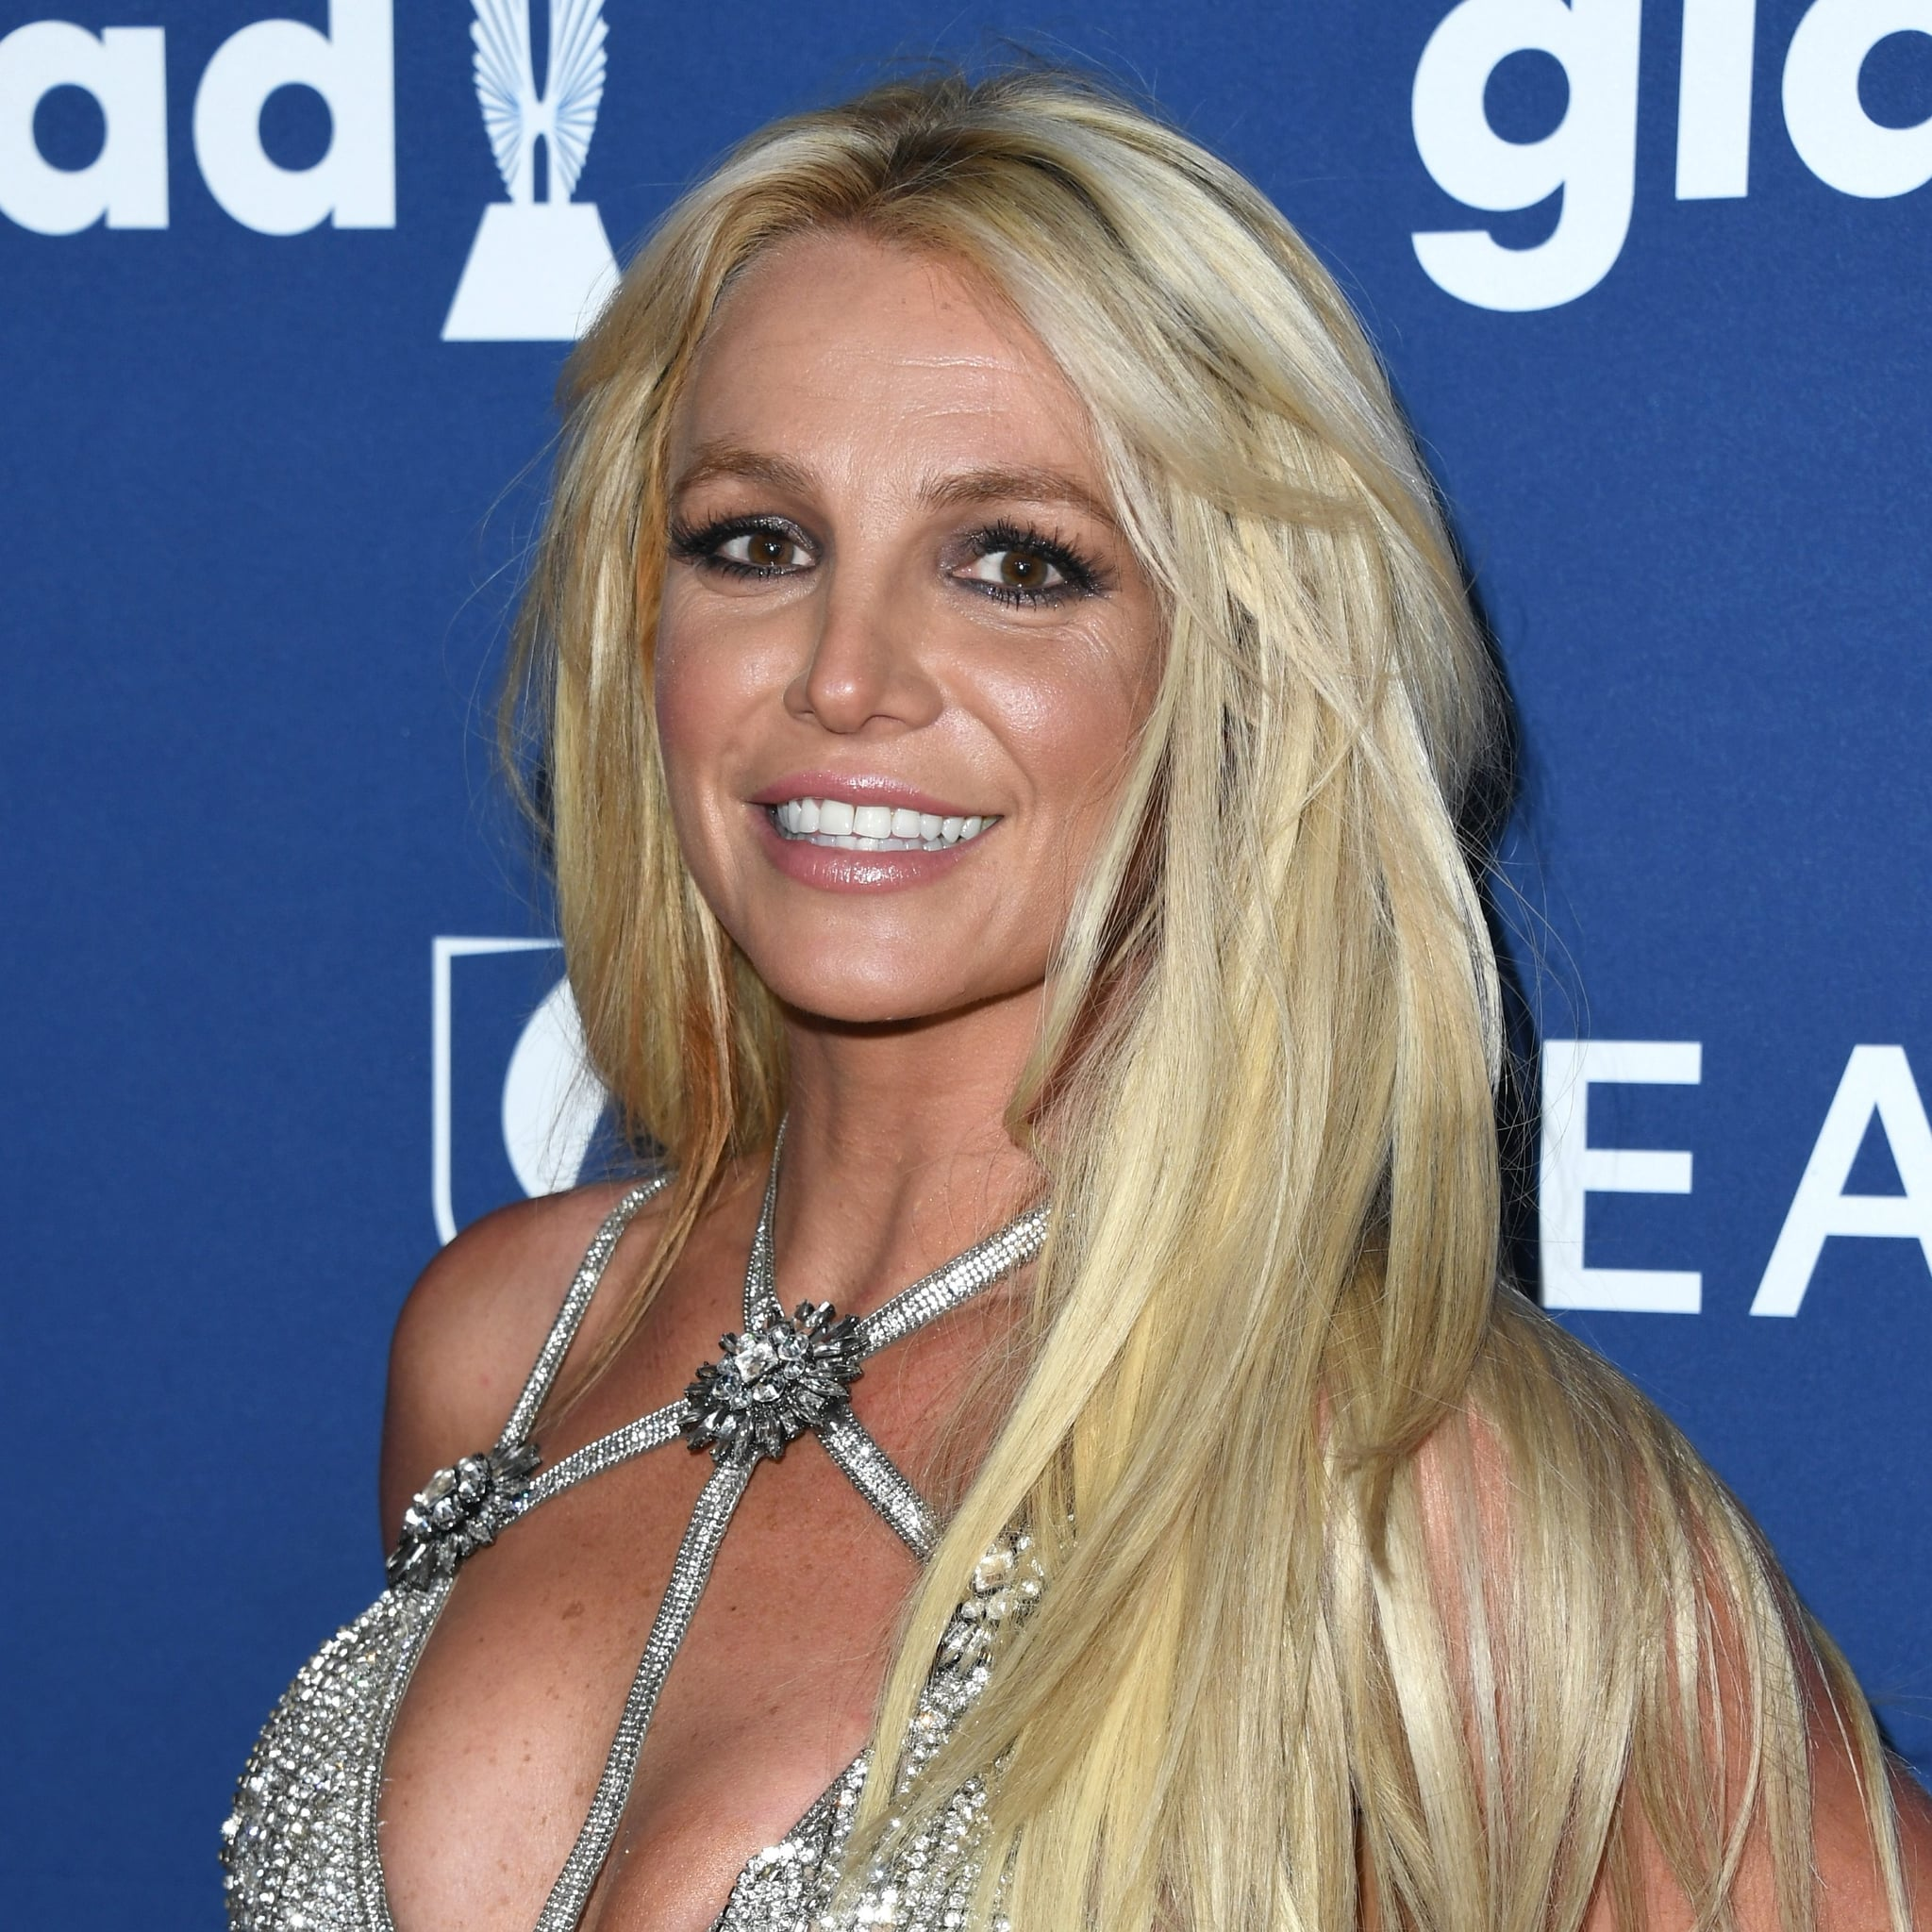 Britney Spears' Guide to Semiconductor Physics